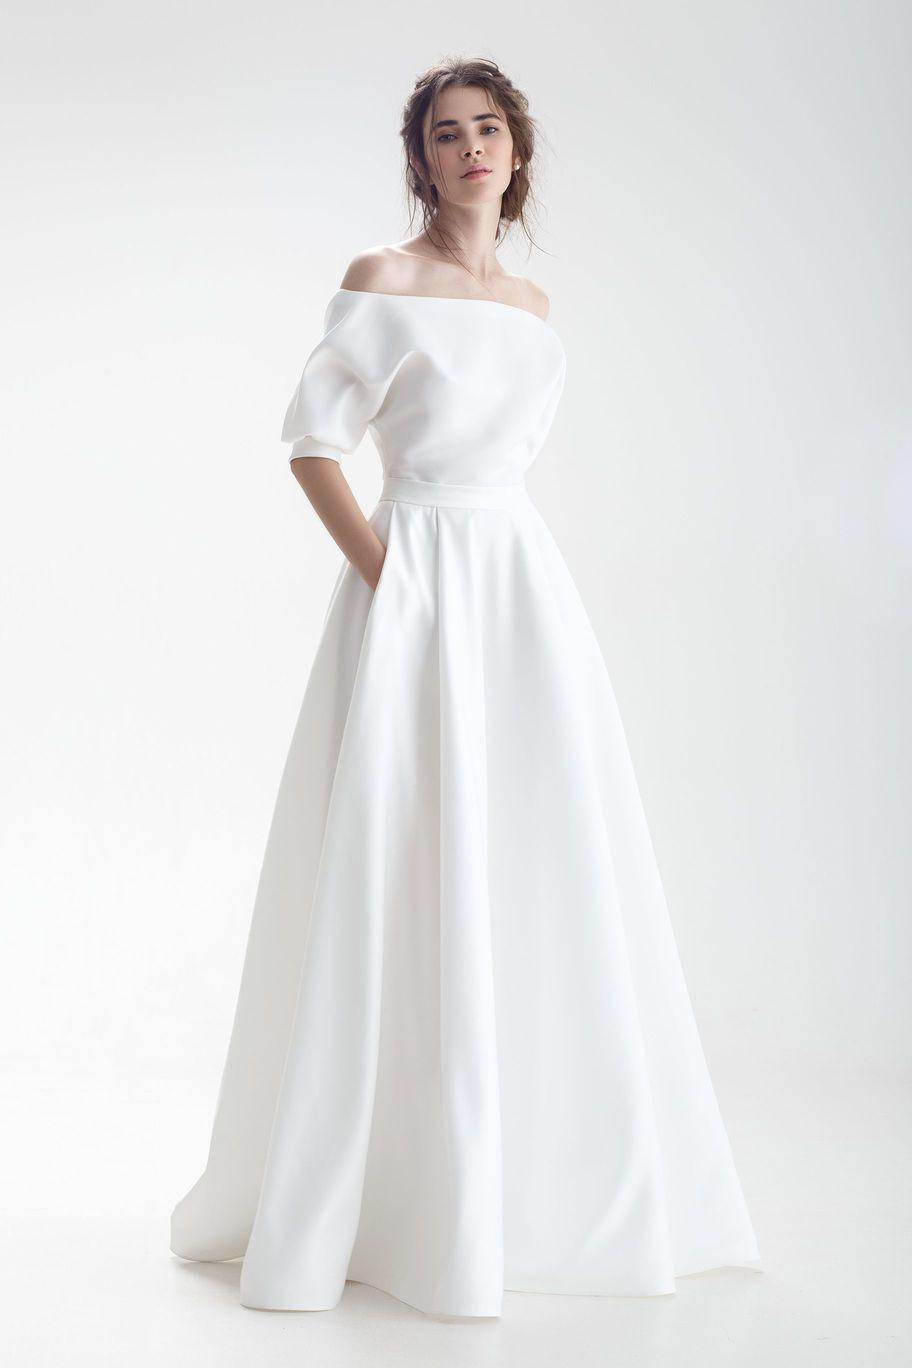 Modern and Sleek Off-Shoulder Wedding Dress with Pockets and Cut-Out Back - Mr. & Mrs. Tomorrow